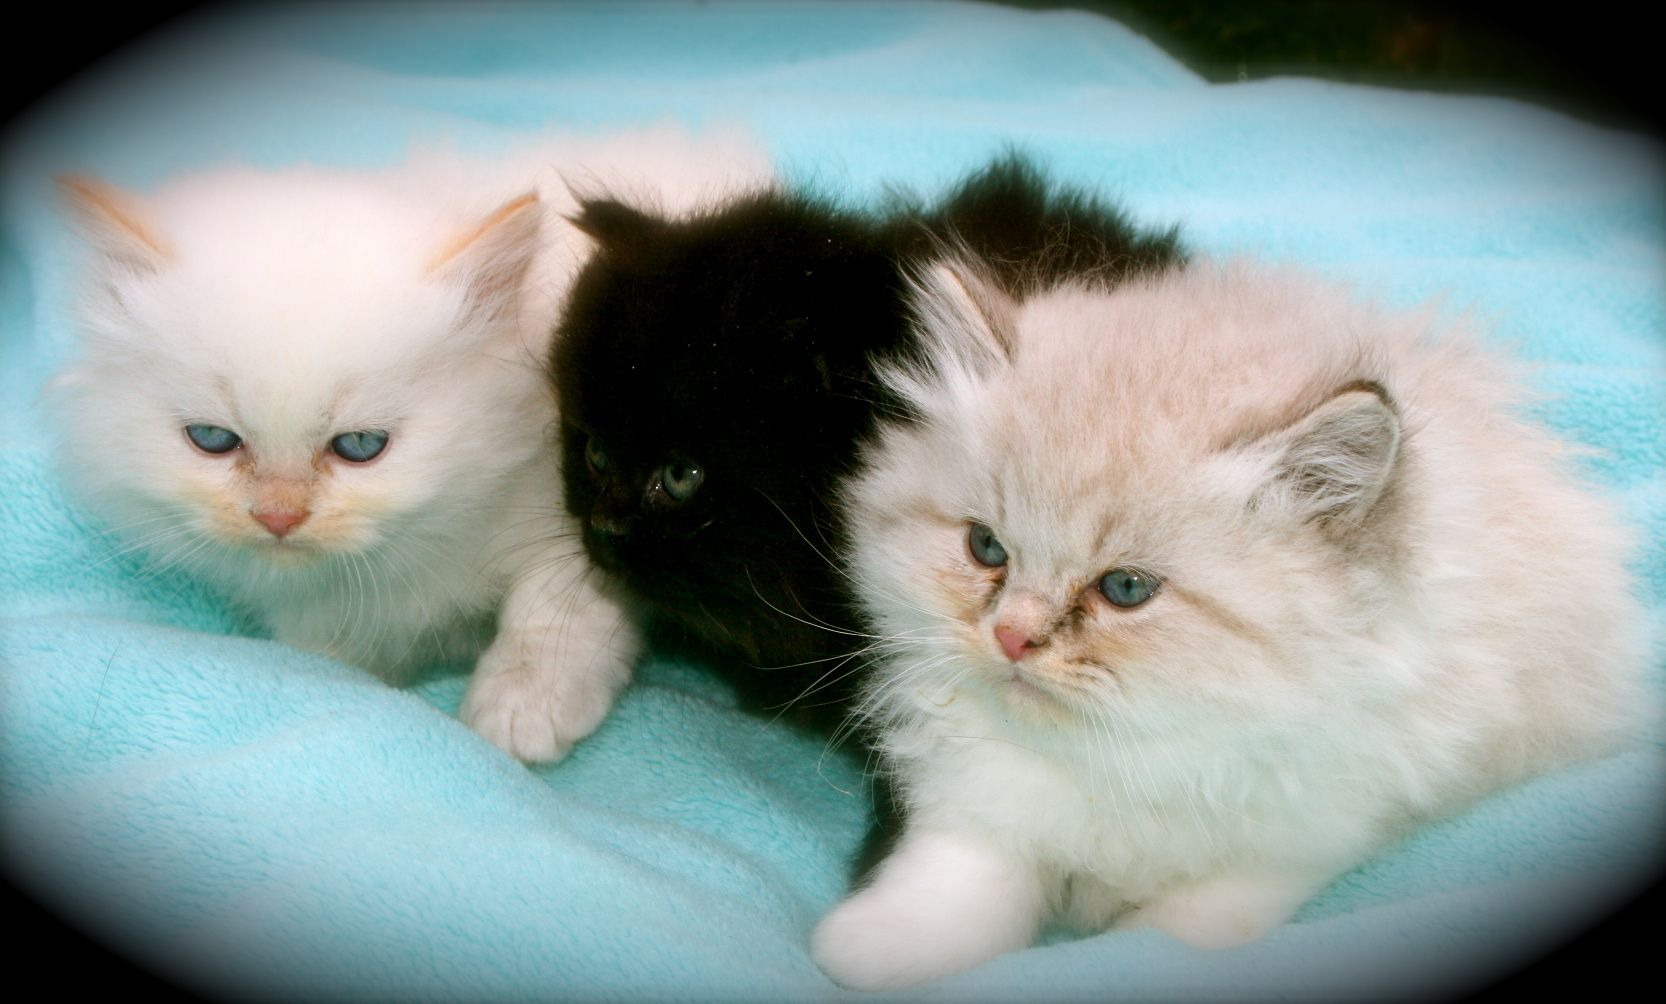 Purebred Kittens 4 Sale Bethlehem Carriage Company Cute Cats Cats And Kittens Kittens